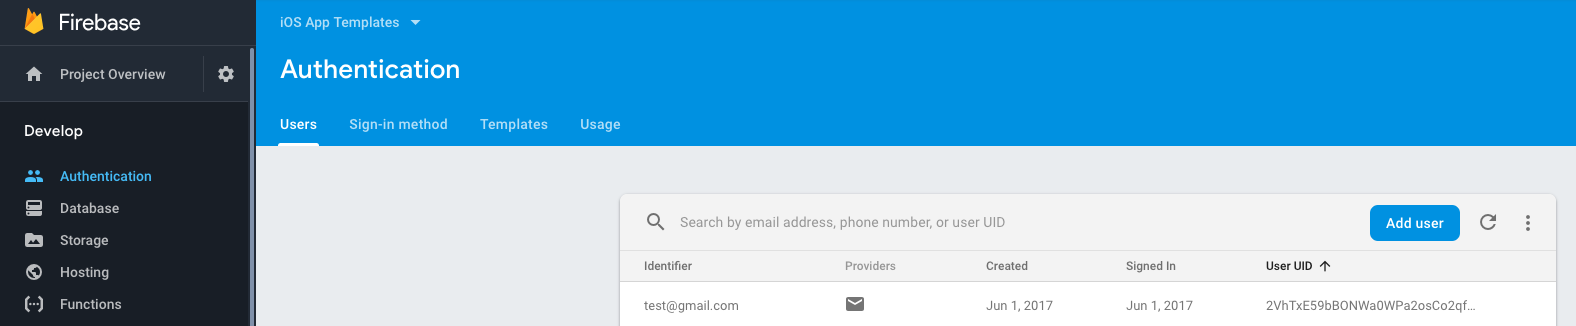 firebase authentication user id